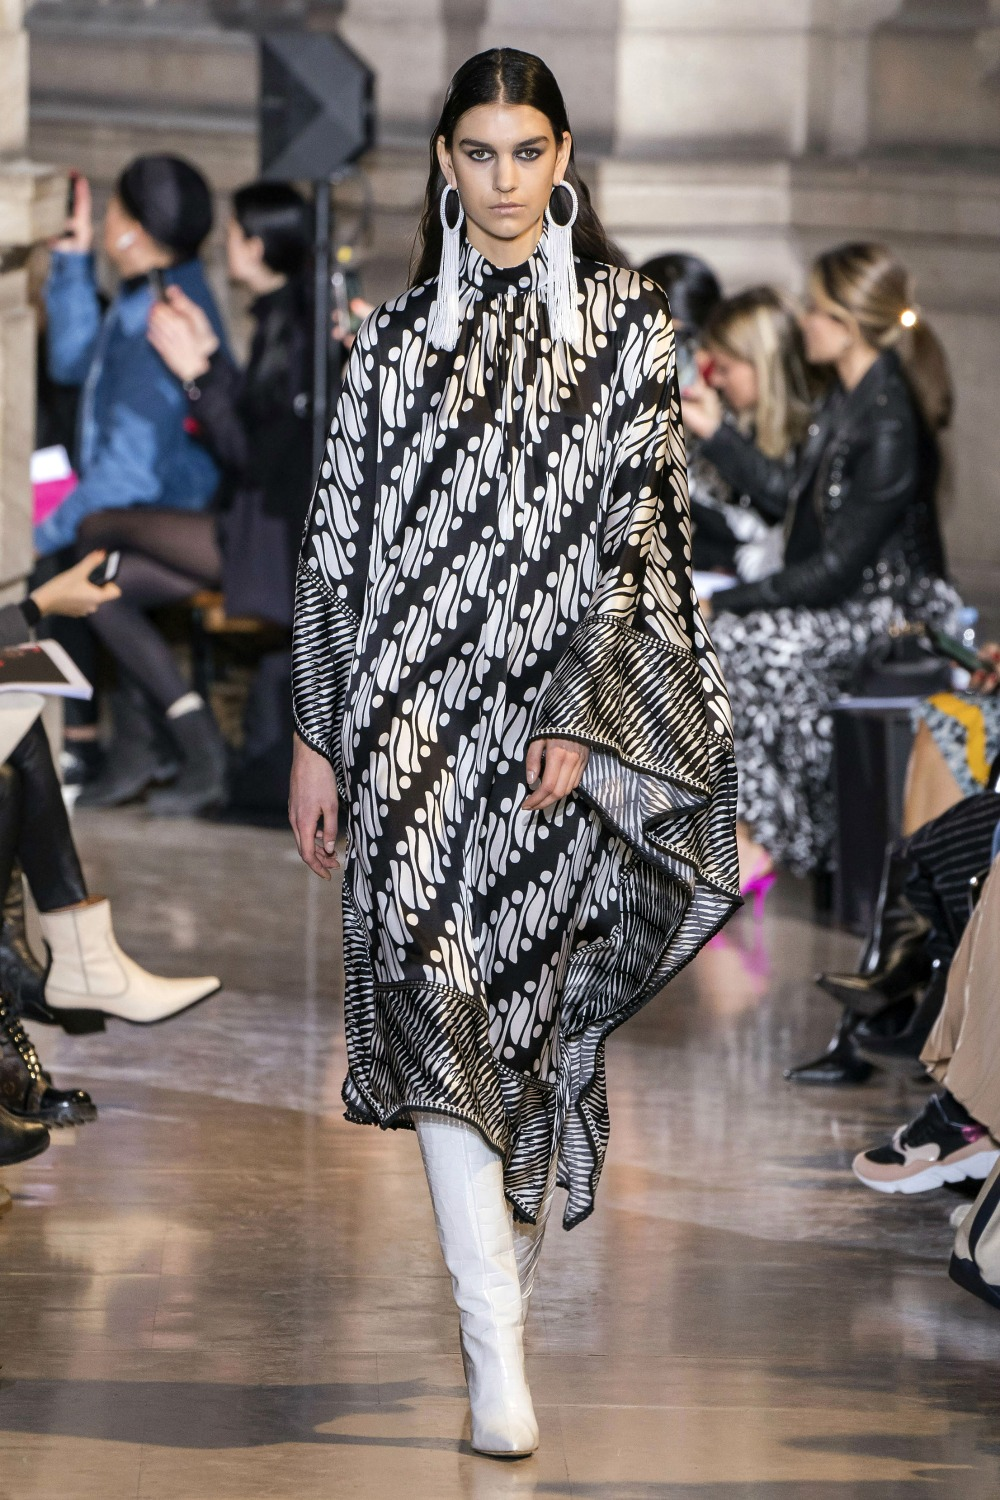 Best Paris Fashion Week Looks -Andrew Gn Fall 2019 Runway Collection #PFW #FashionWeek